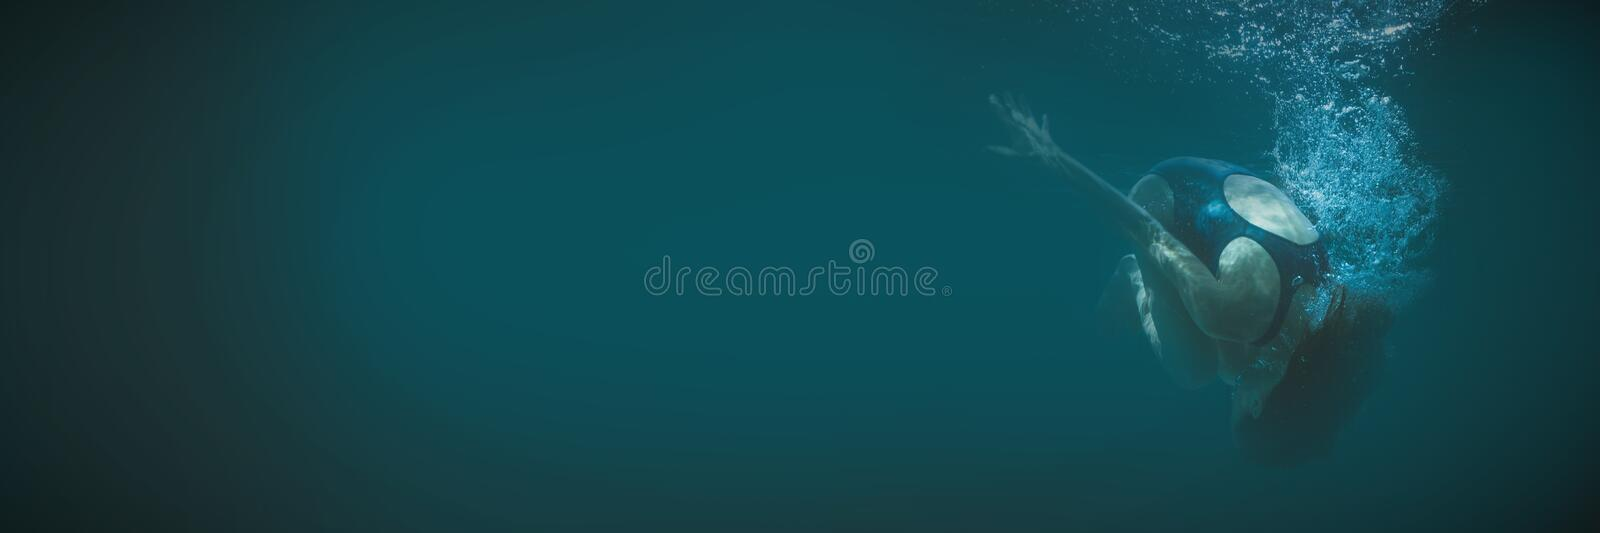 Athletic swimmer doing a somersault underwater stock photos